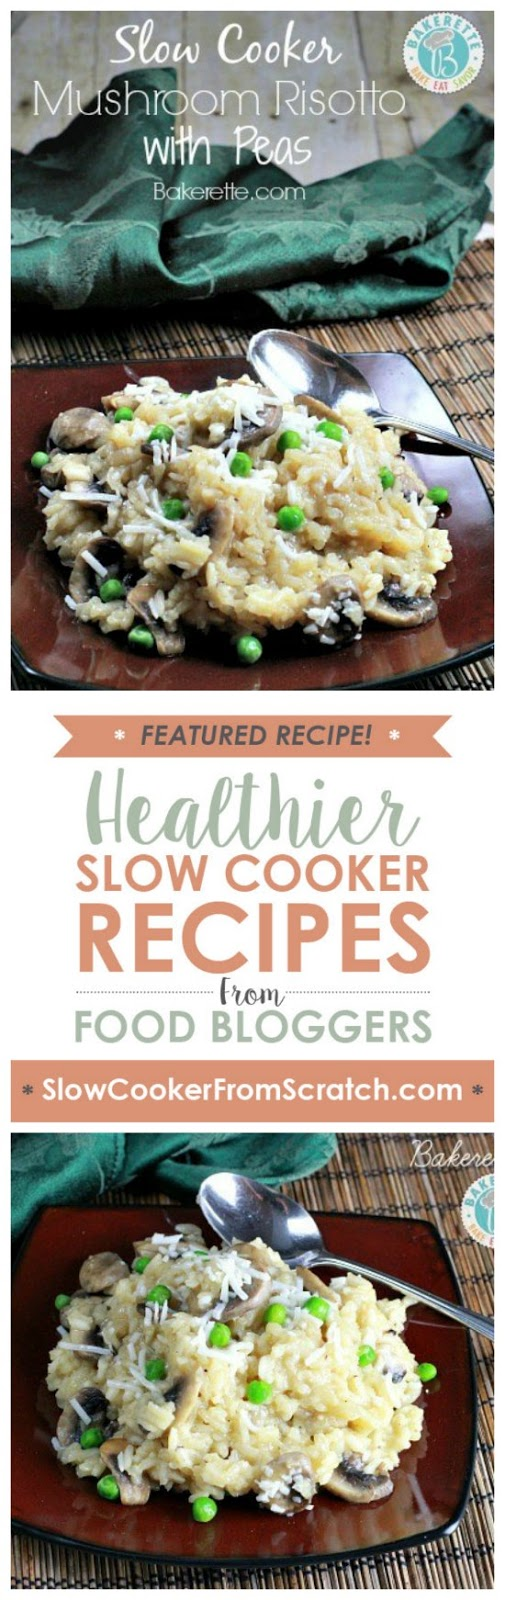 Slow Cooker Mushroom Risotto with Peas from Bakerette featured on SlowCookerFromScratch.com